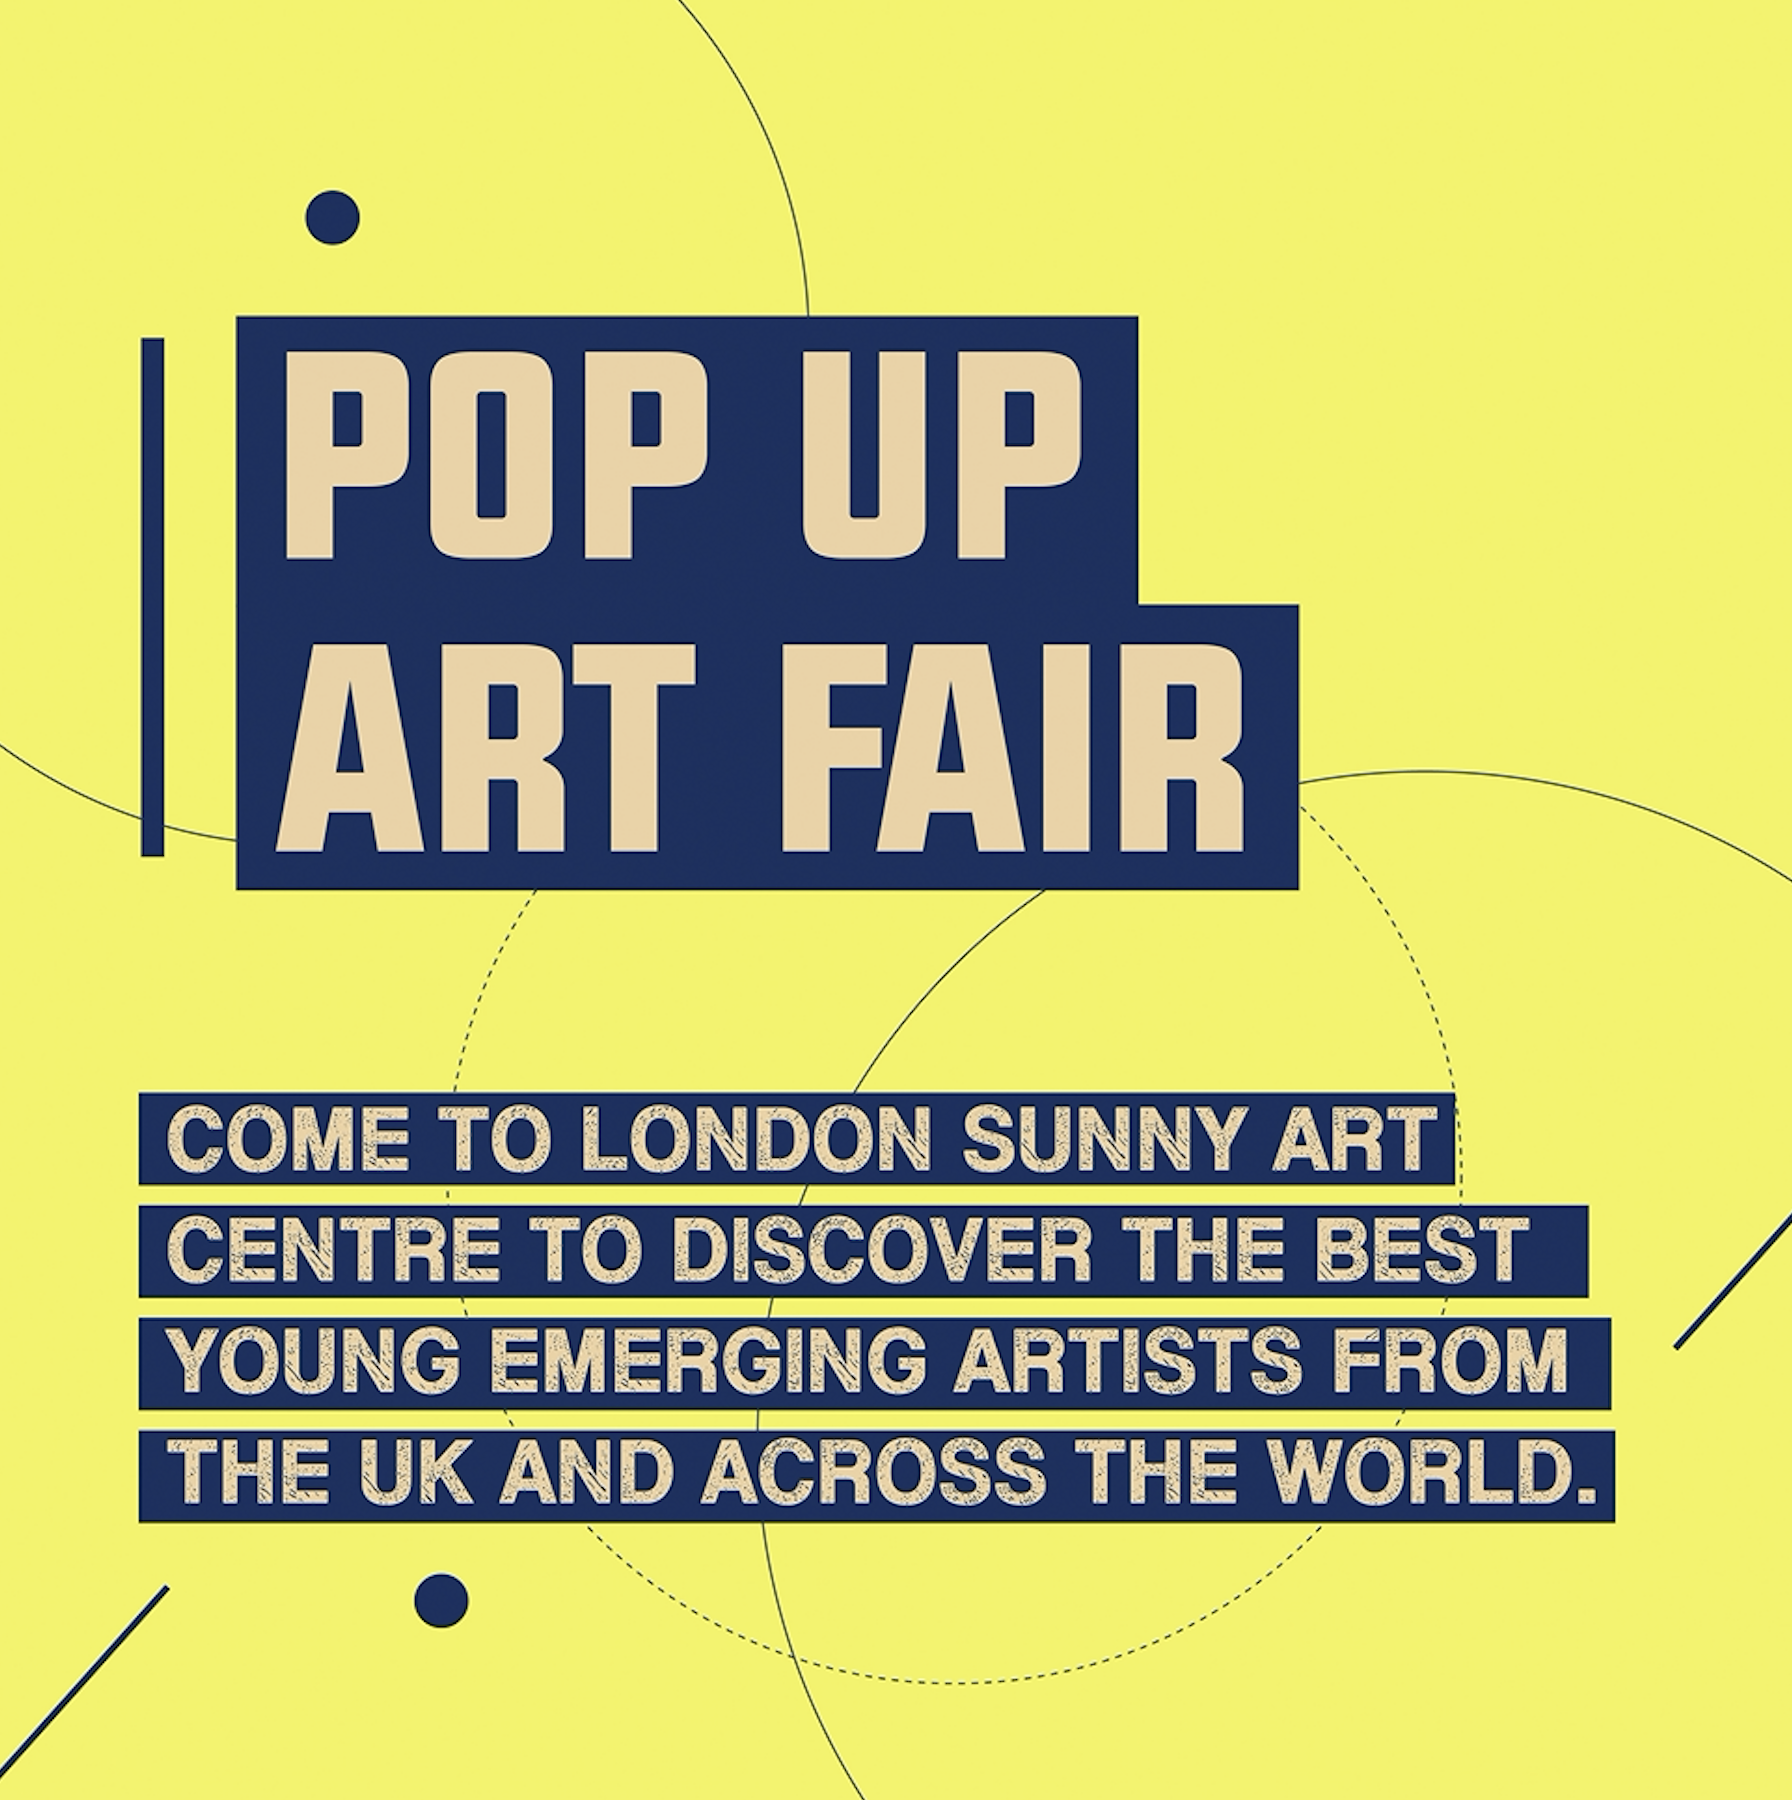 London Pop Up Art Fair - Sunny Art Centre